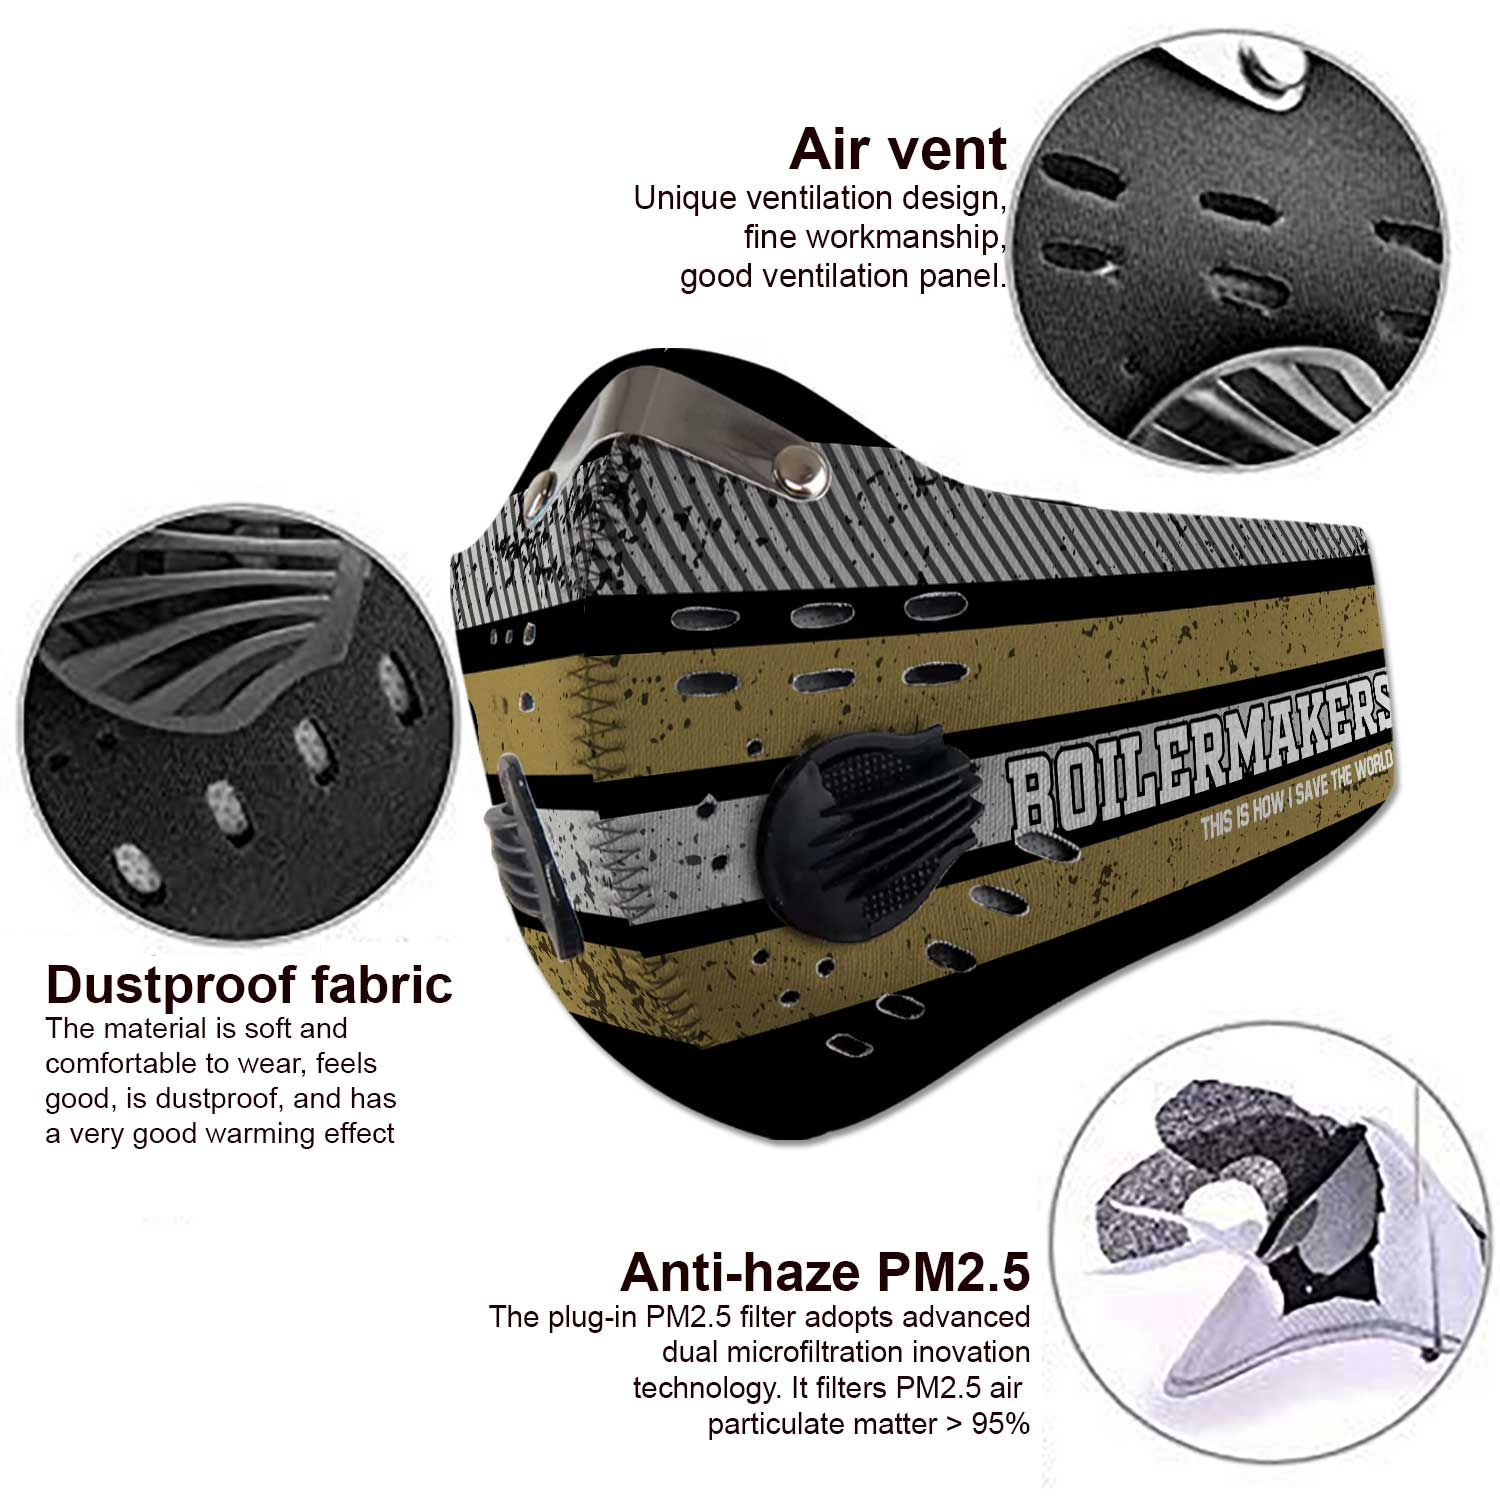 Purdue boilermakers this is how i save the world carbon filter face mask 3